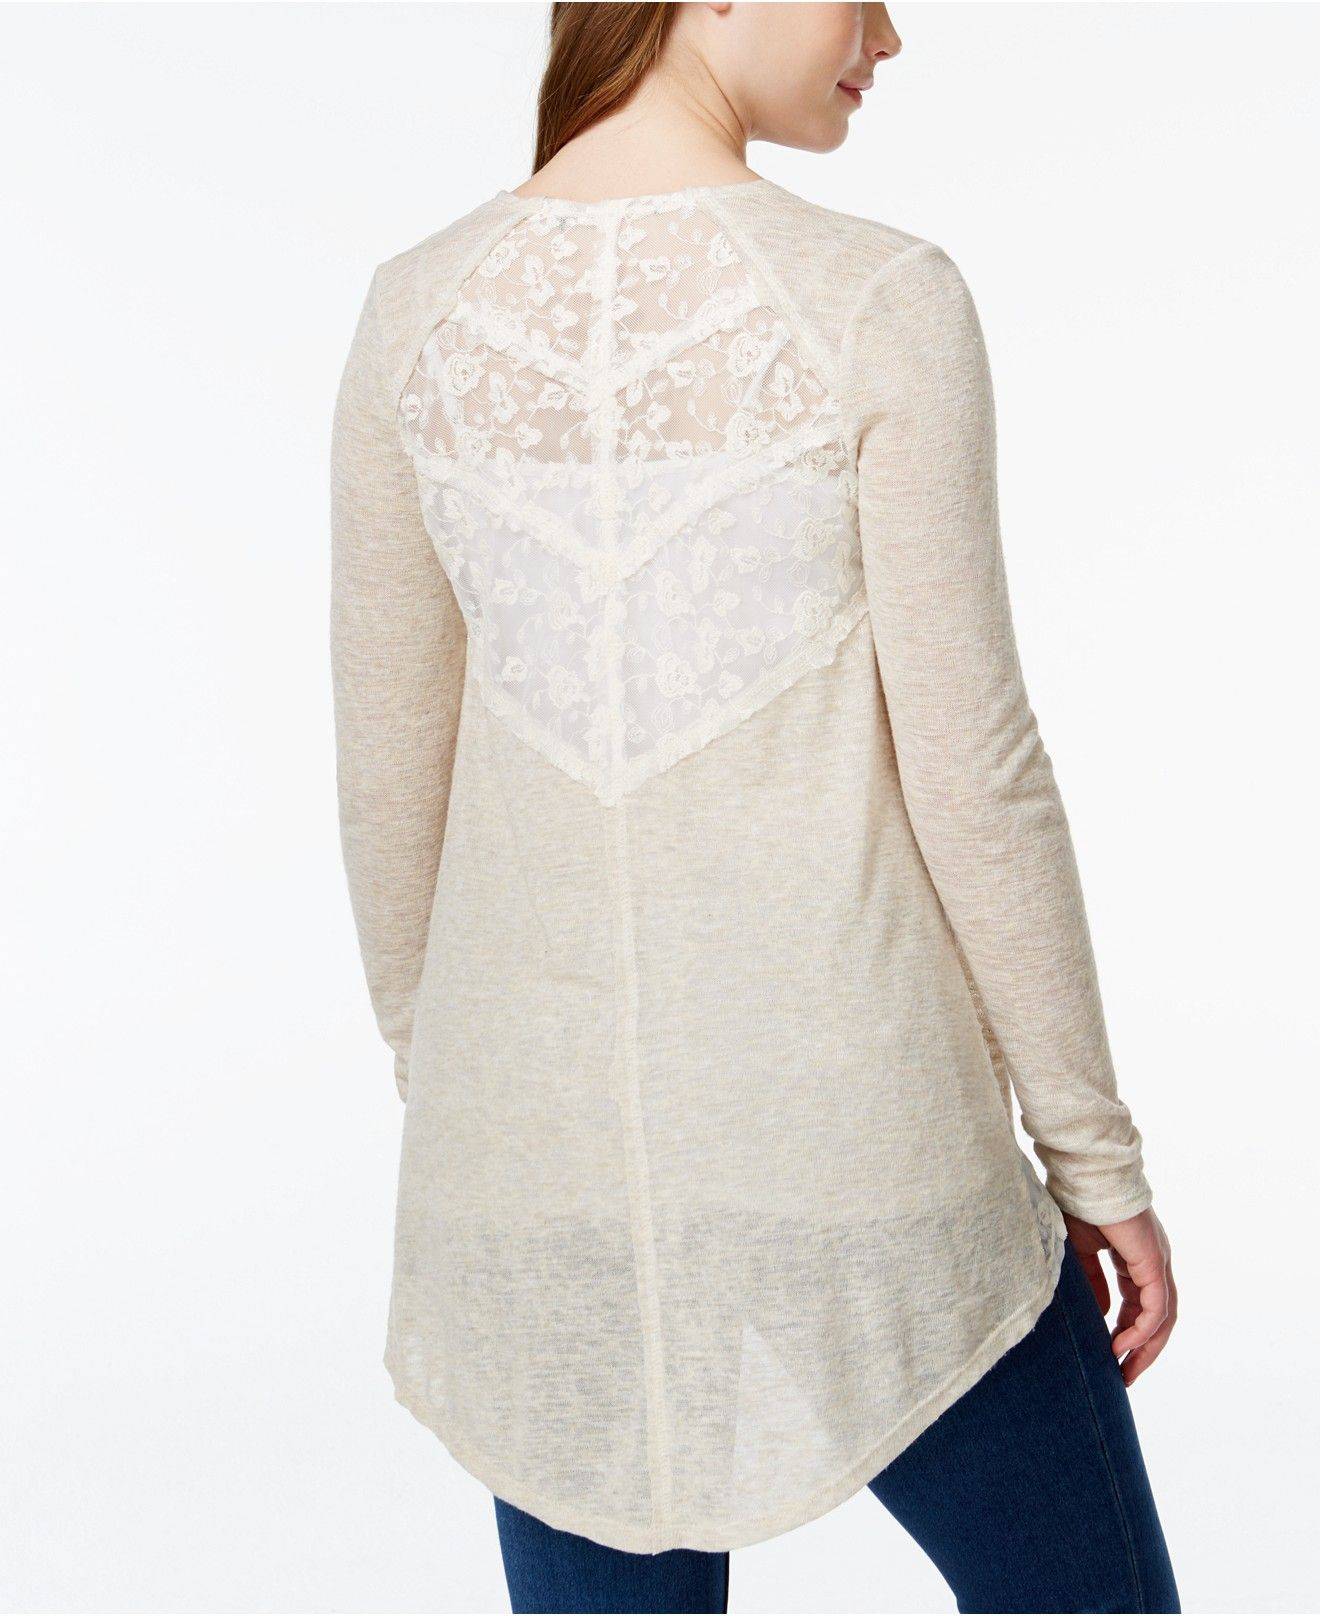 American Rag Marled Lace-Trim High-Low Cardigan Sweater, Only at ...